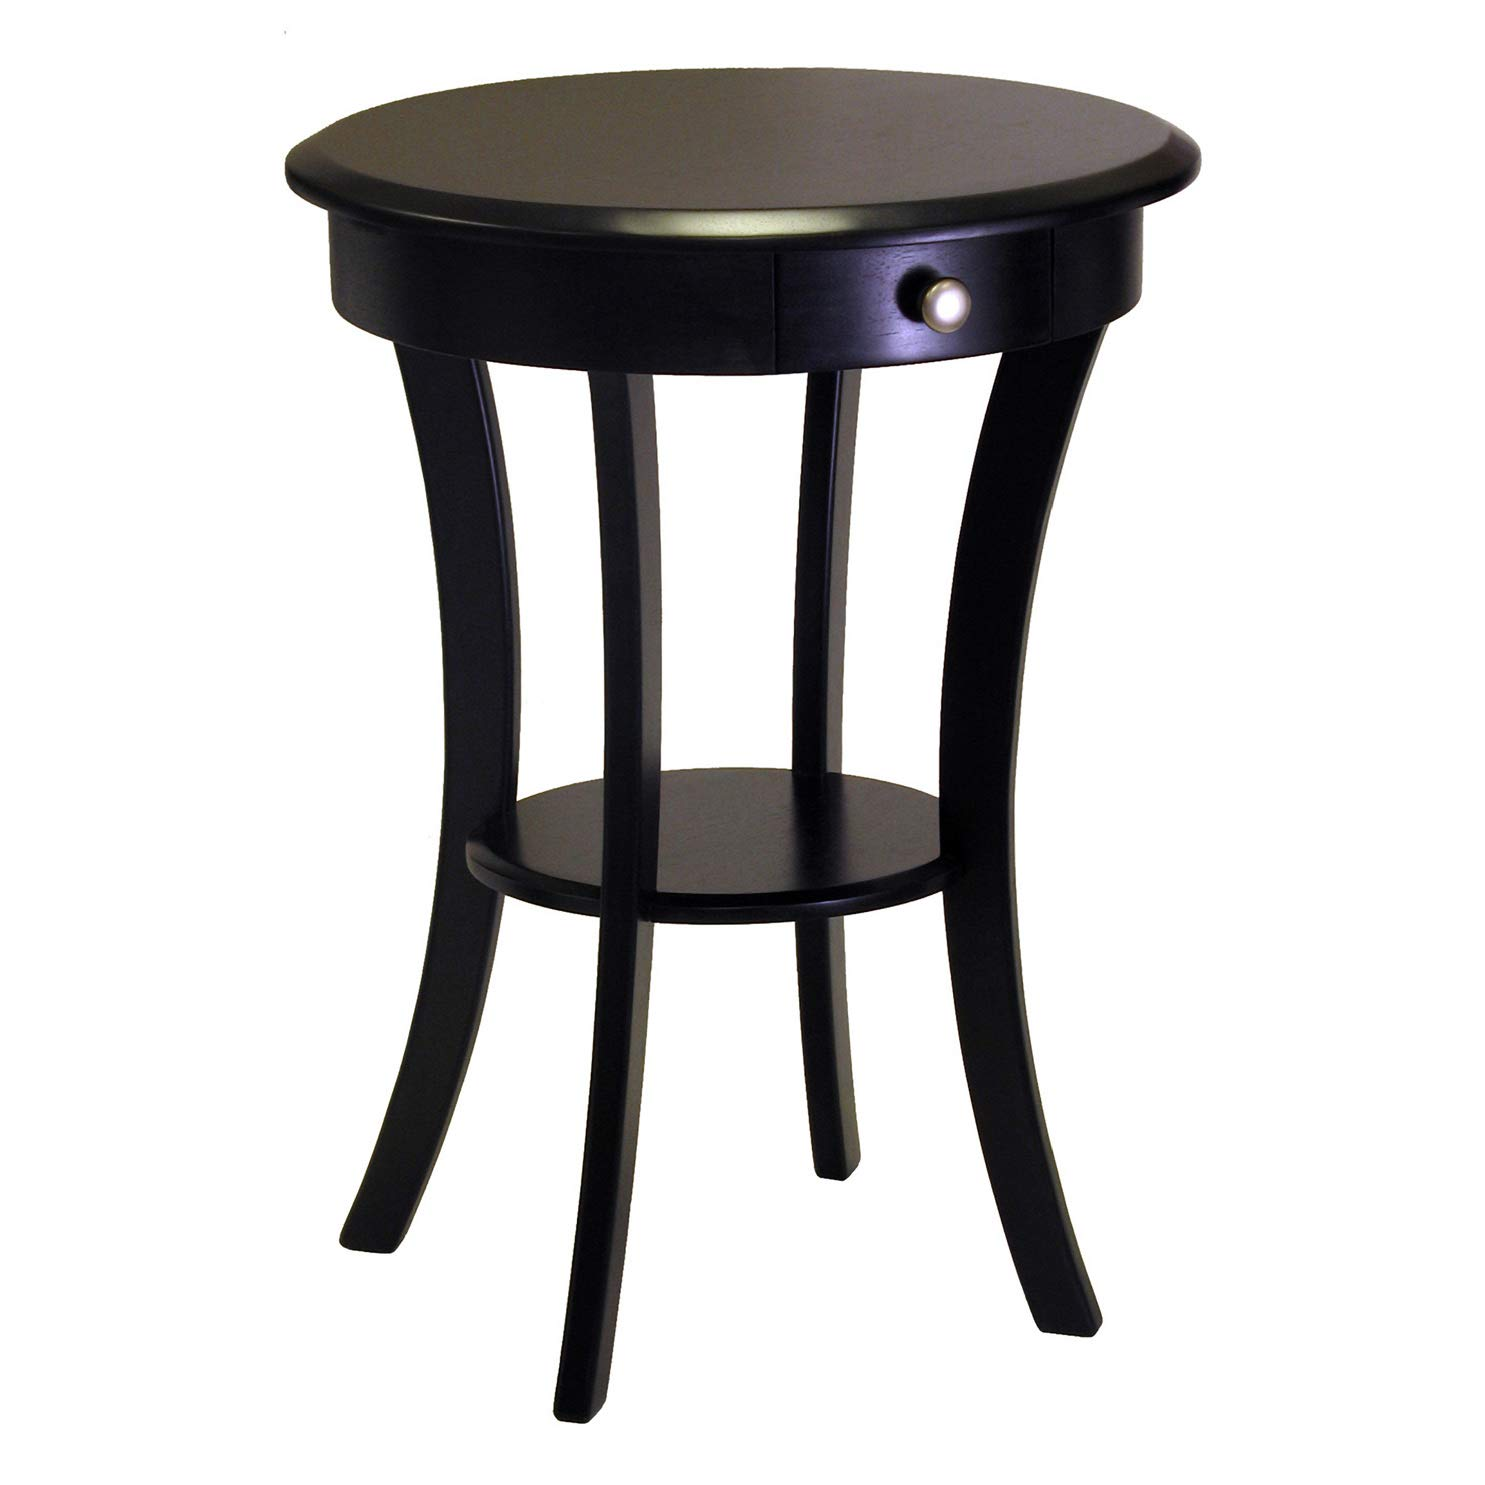 winsome wood sasha accent table black kitchen target dining fur blanket farmhouse style set game console tall side with drawers nautical themed coffee grill master parts ava